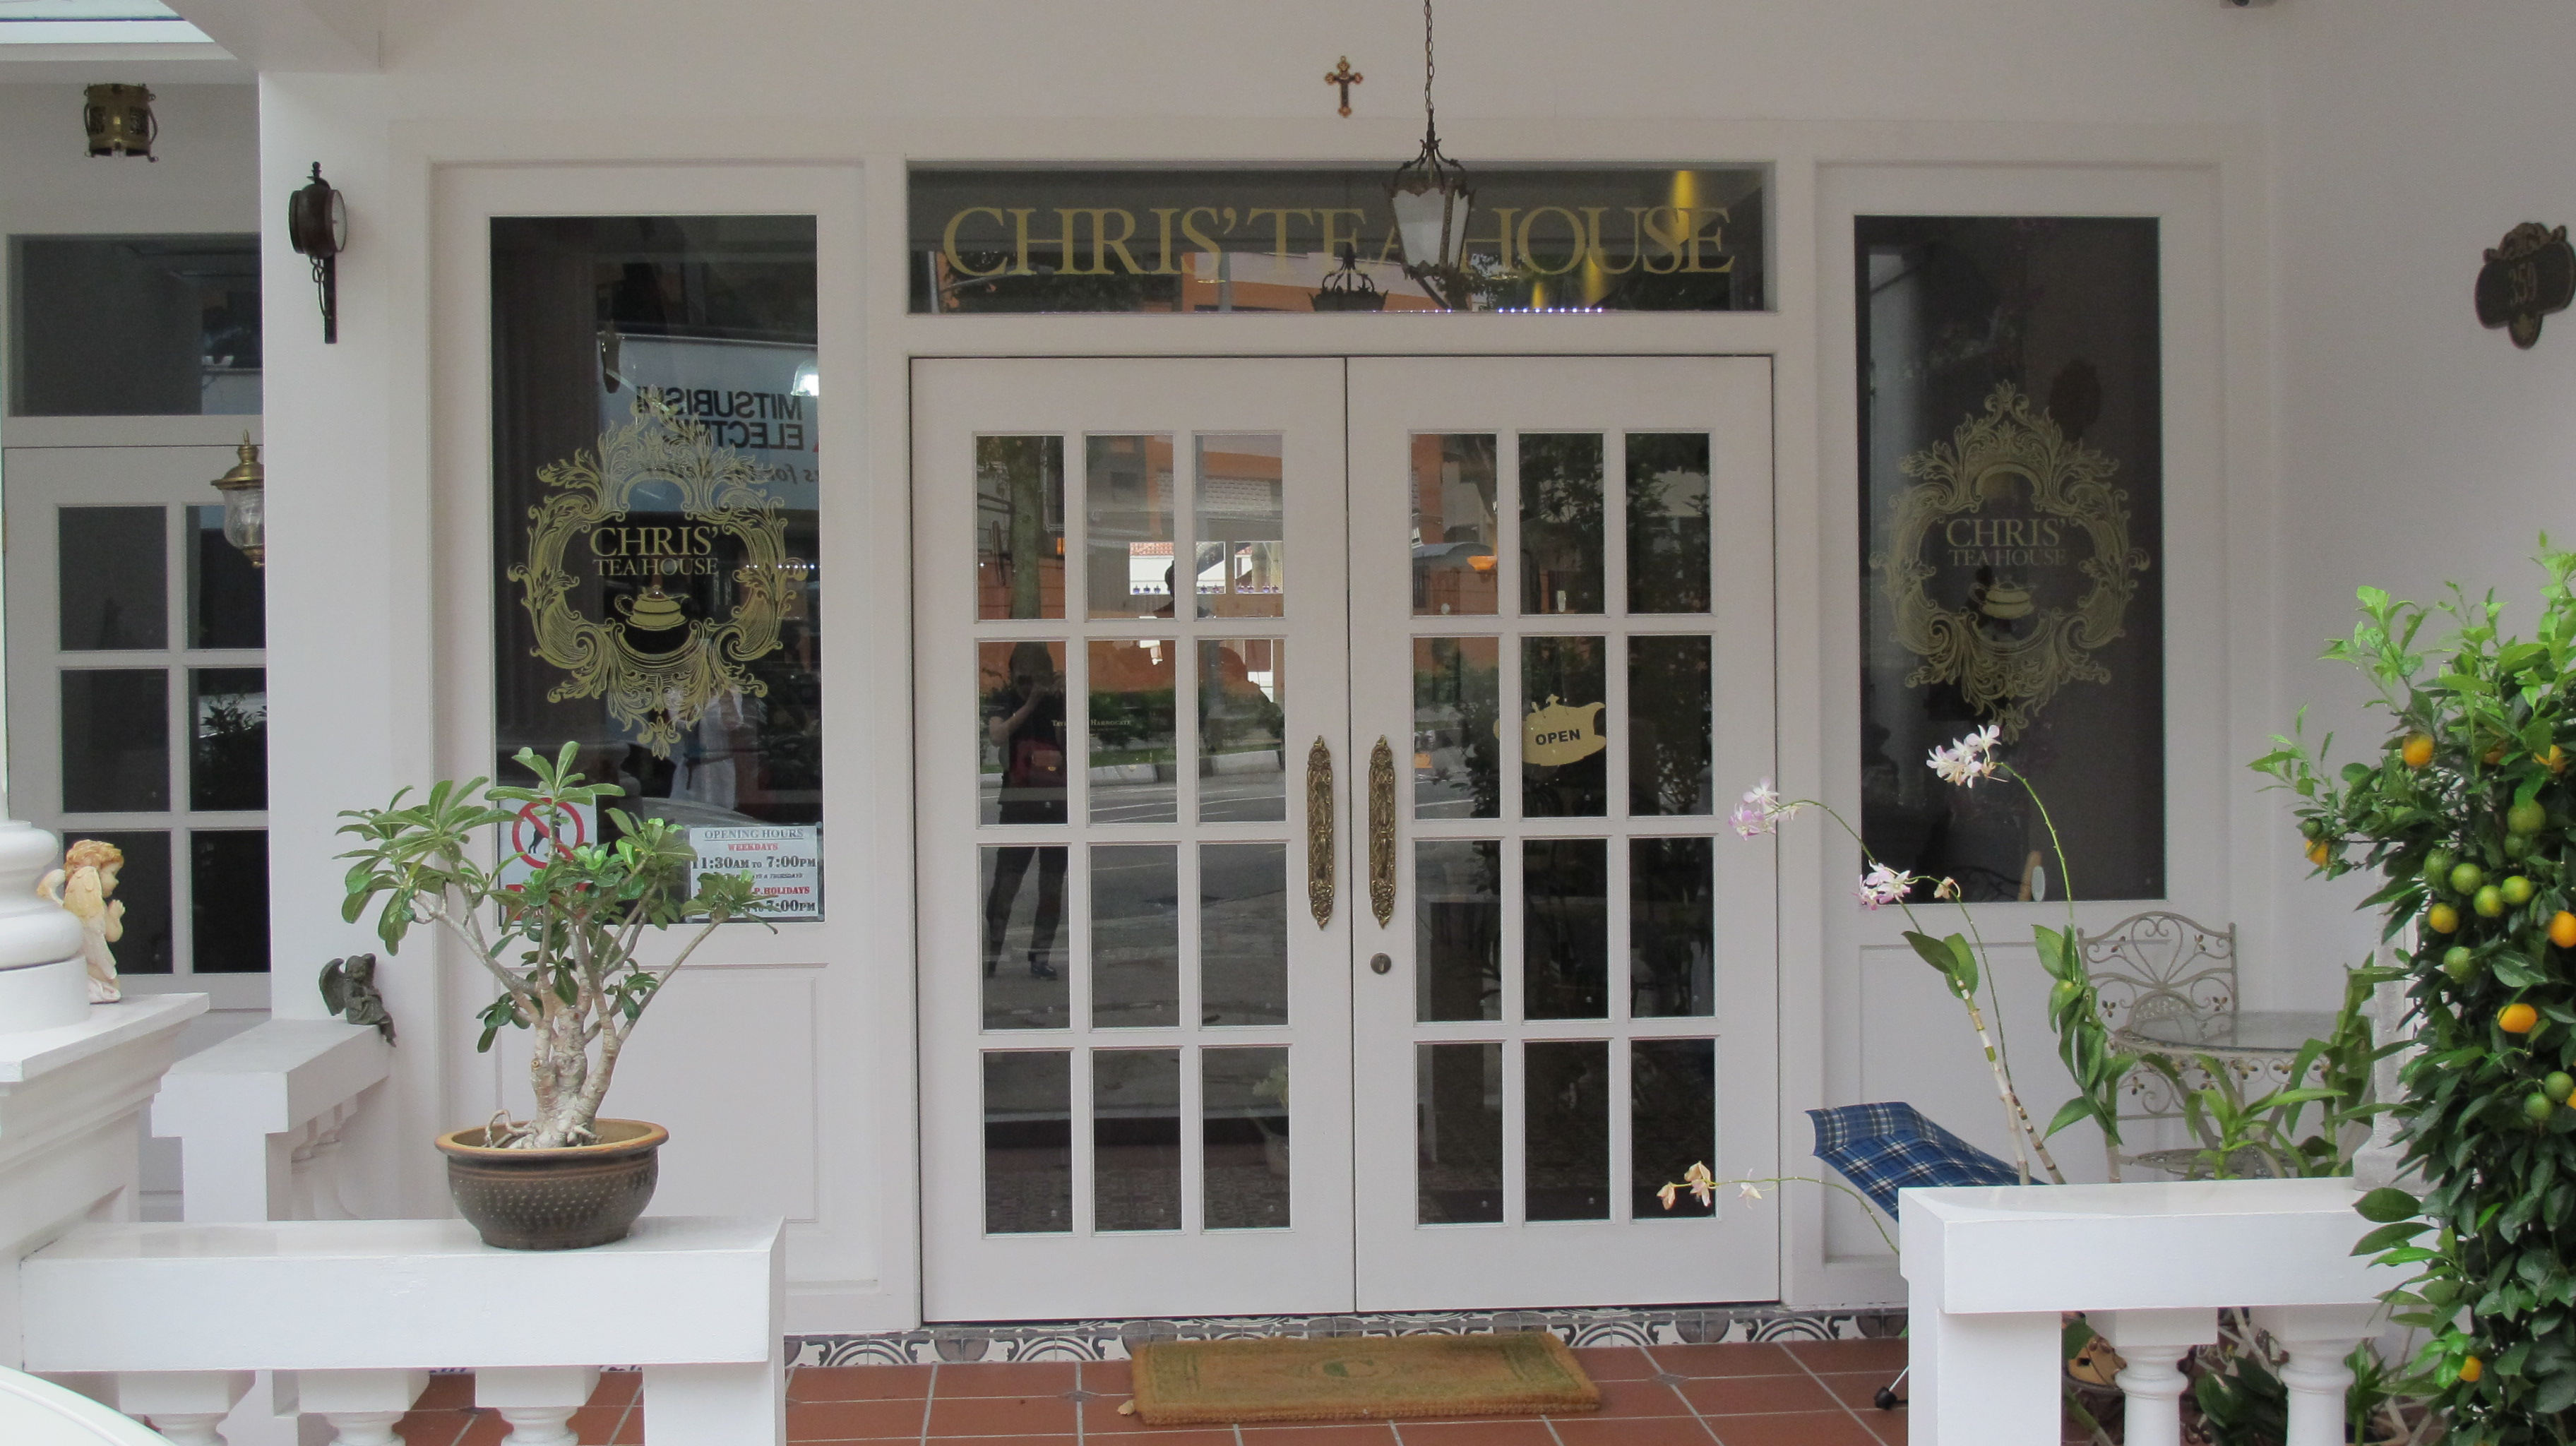 Chris' Tea House « Charlinary